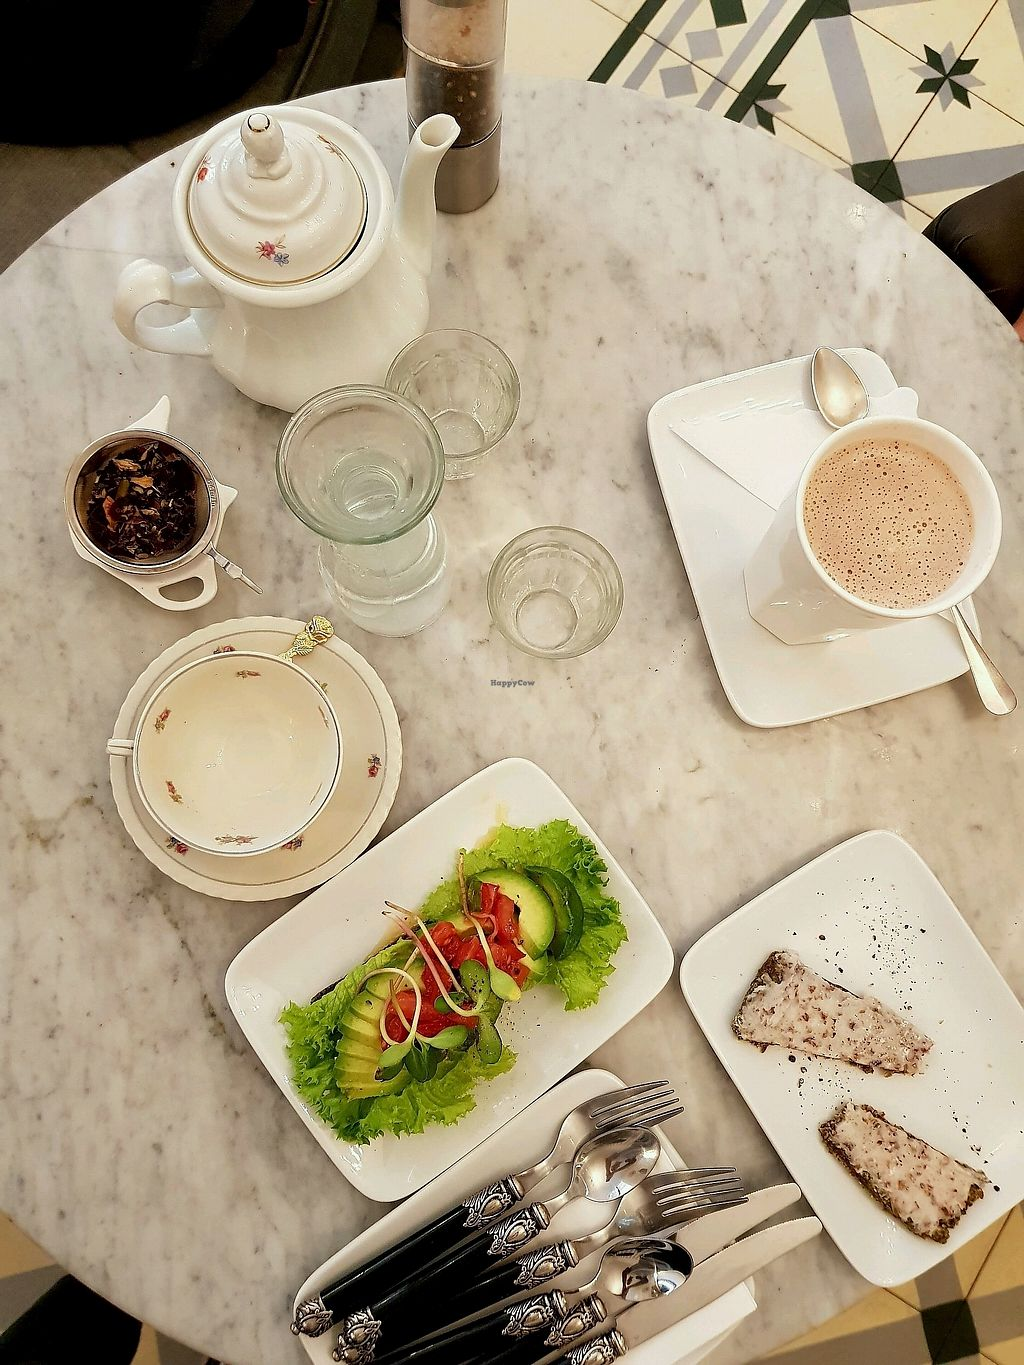 """Photo of Simply Raw Bakery and Bistro  by <a href=""""/members/profile/itamarfriedman"""">itamarfriedman</a> <br/>yummy <br/> October 10, 2017  - <a href='/contact/abuse/image/35149/313955'>Report</a>"""